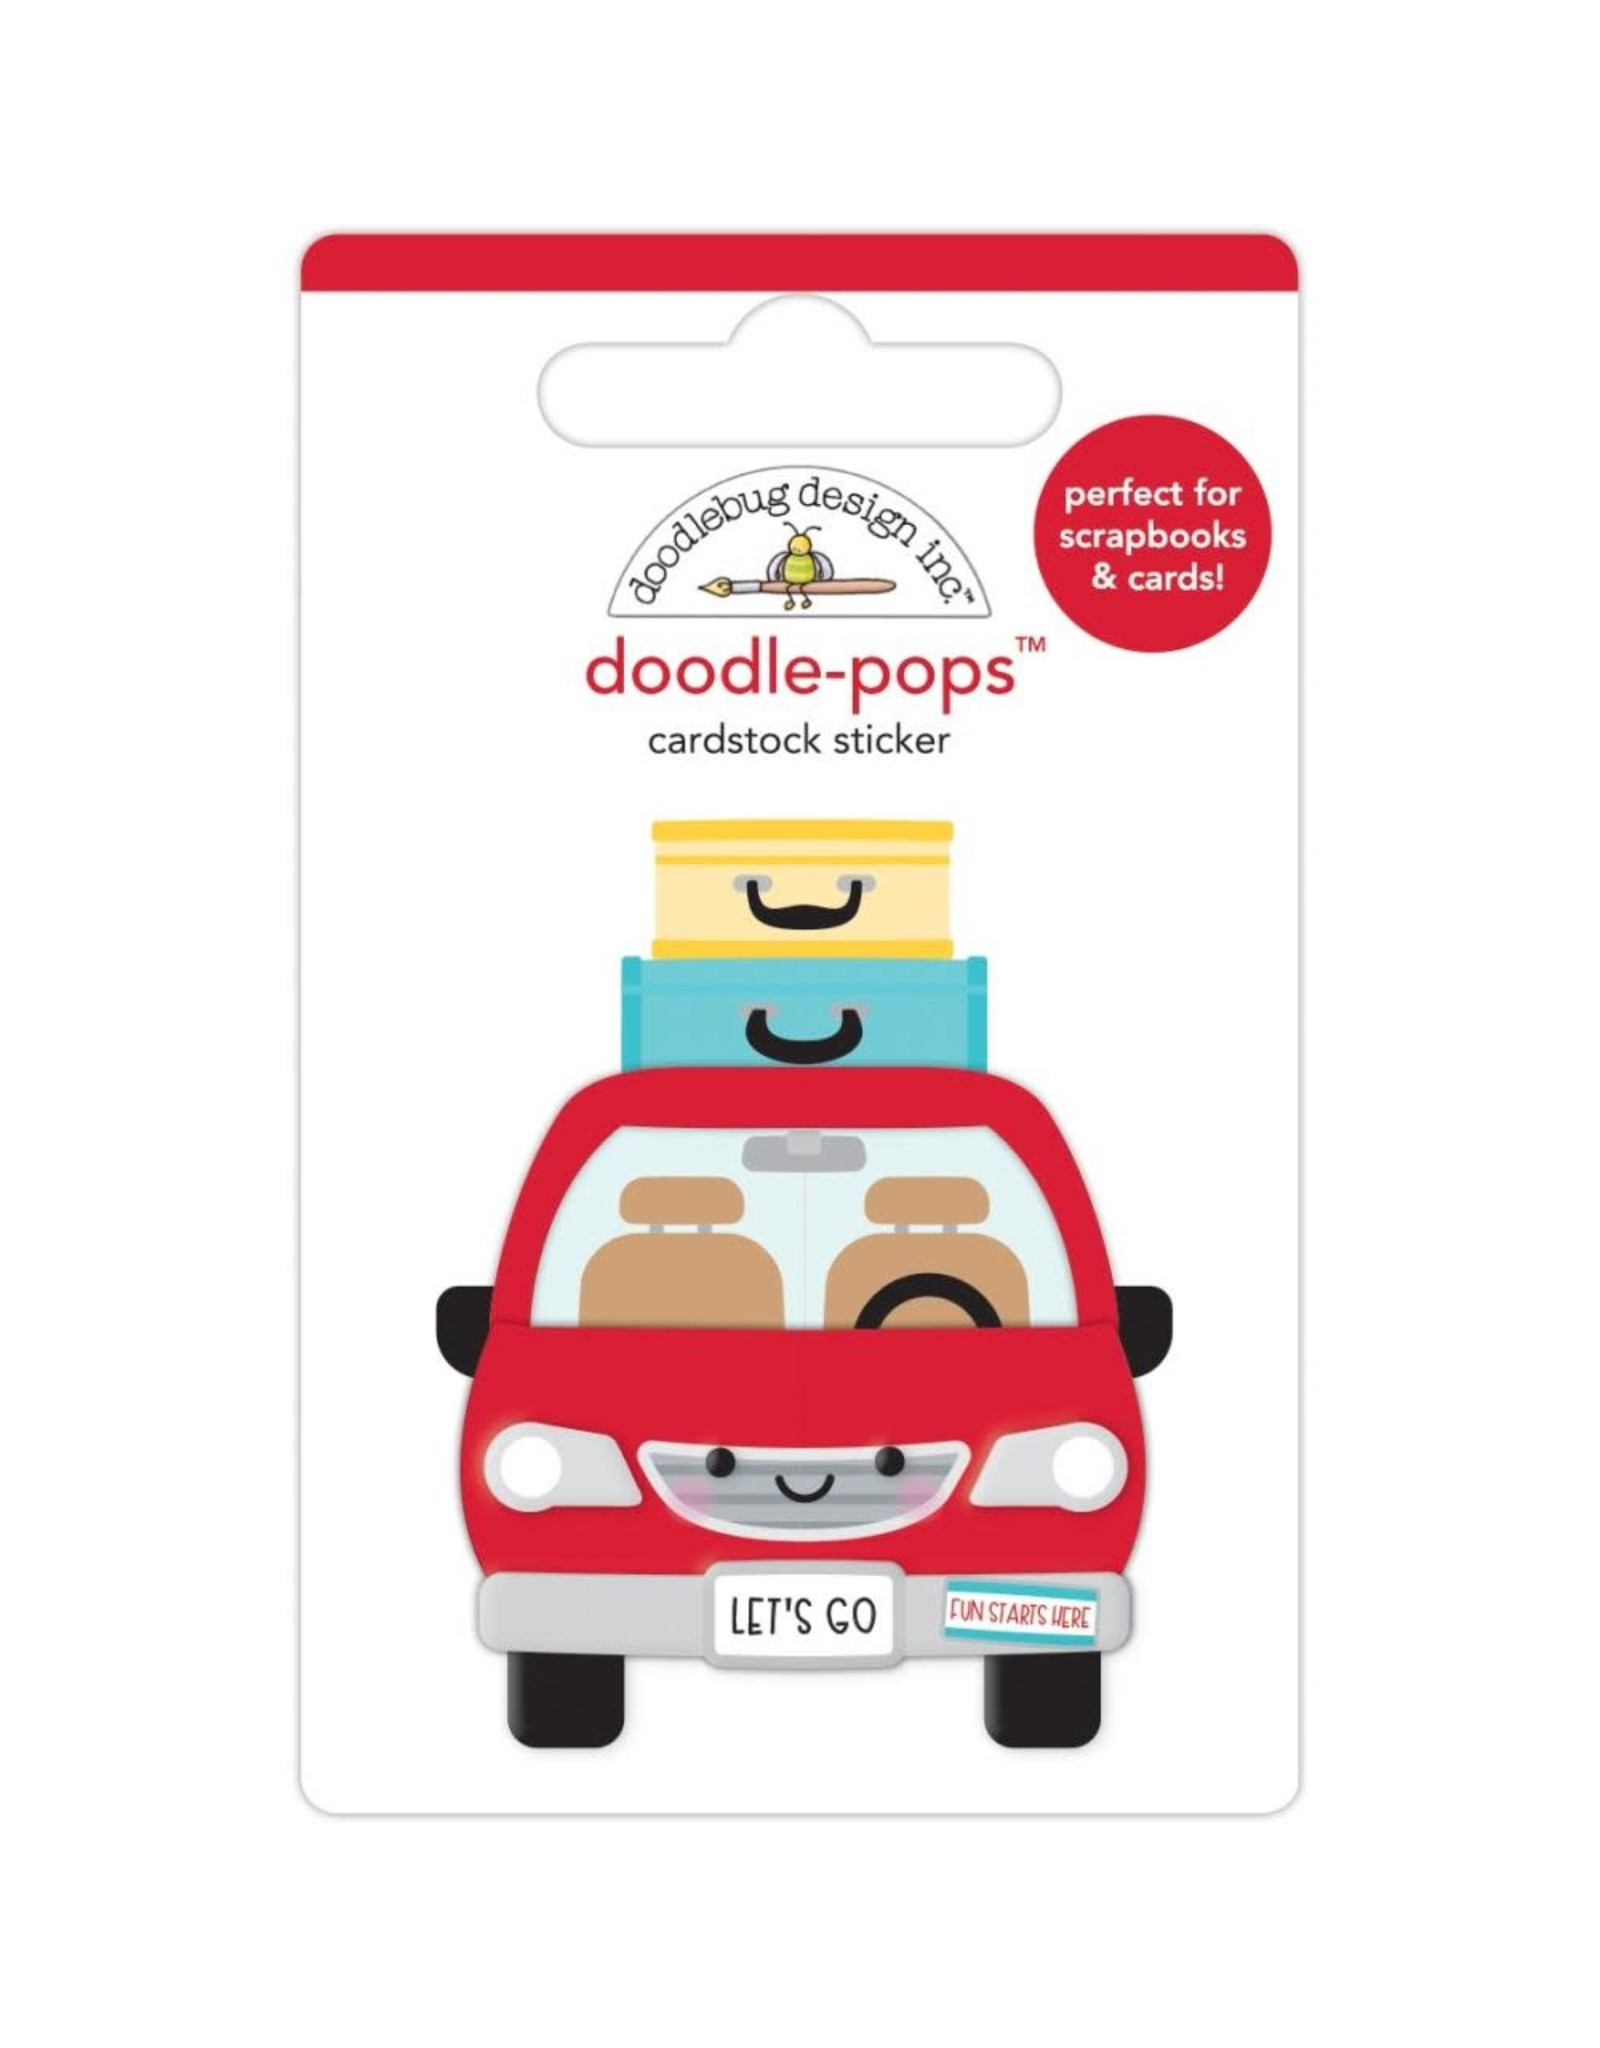 Doodlebug Design are we there yet doodle-pops